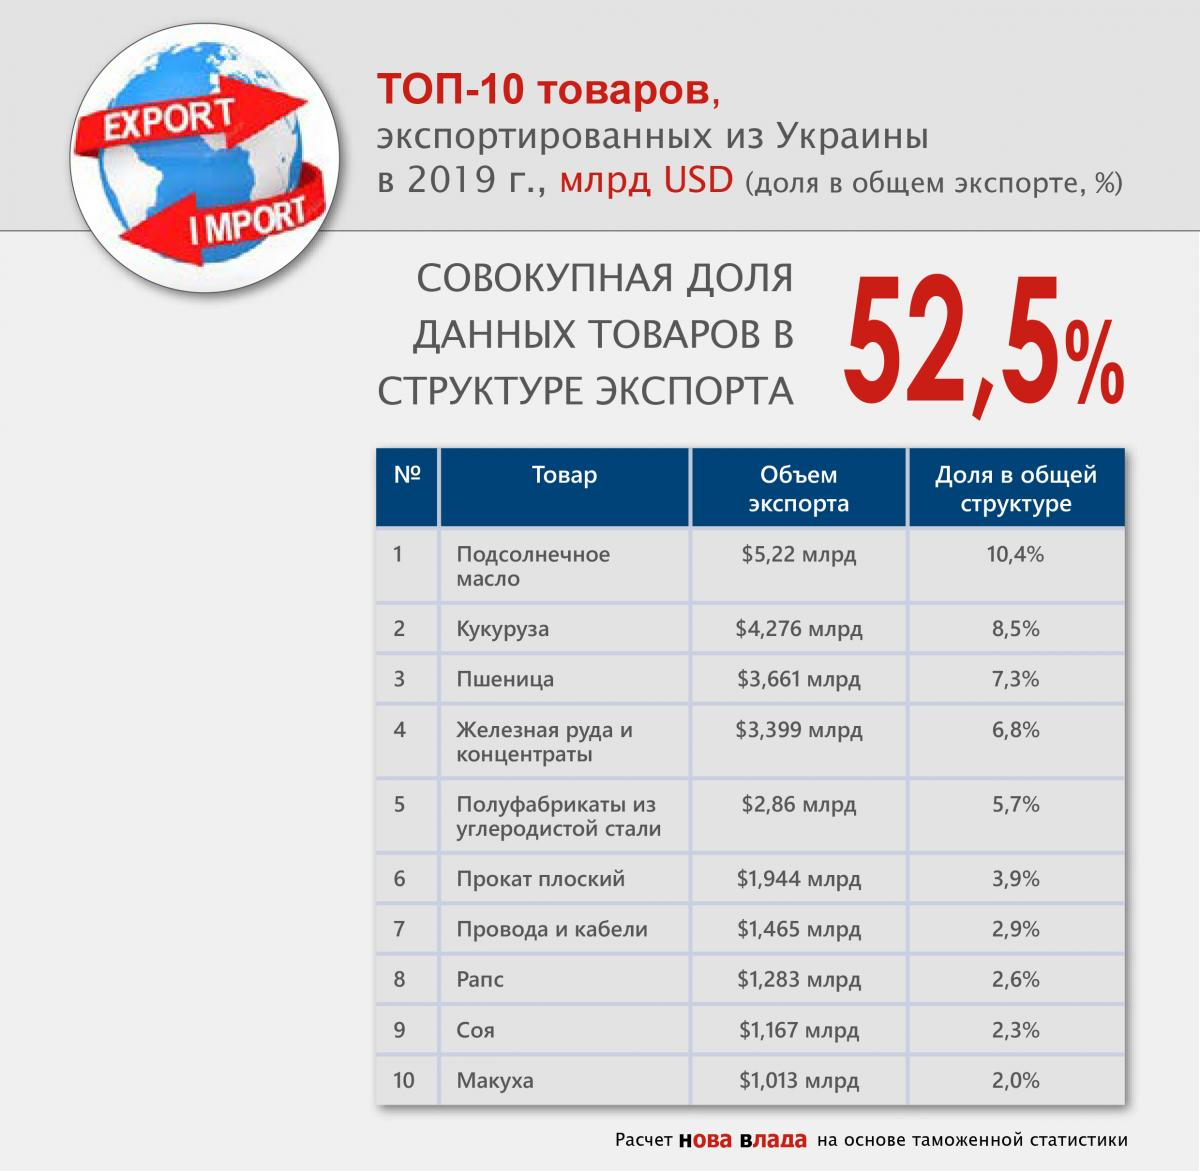 top10_export_tovary_2019.jpg